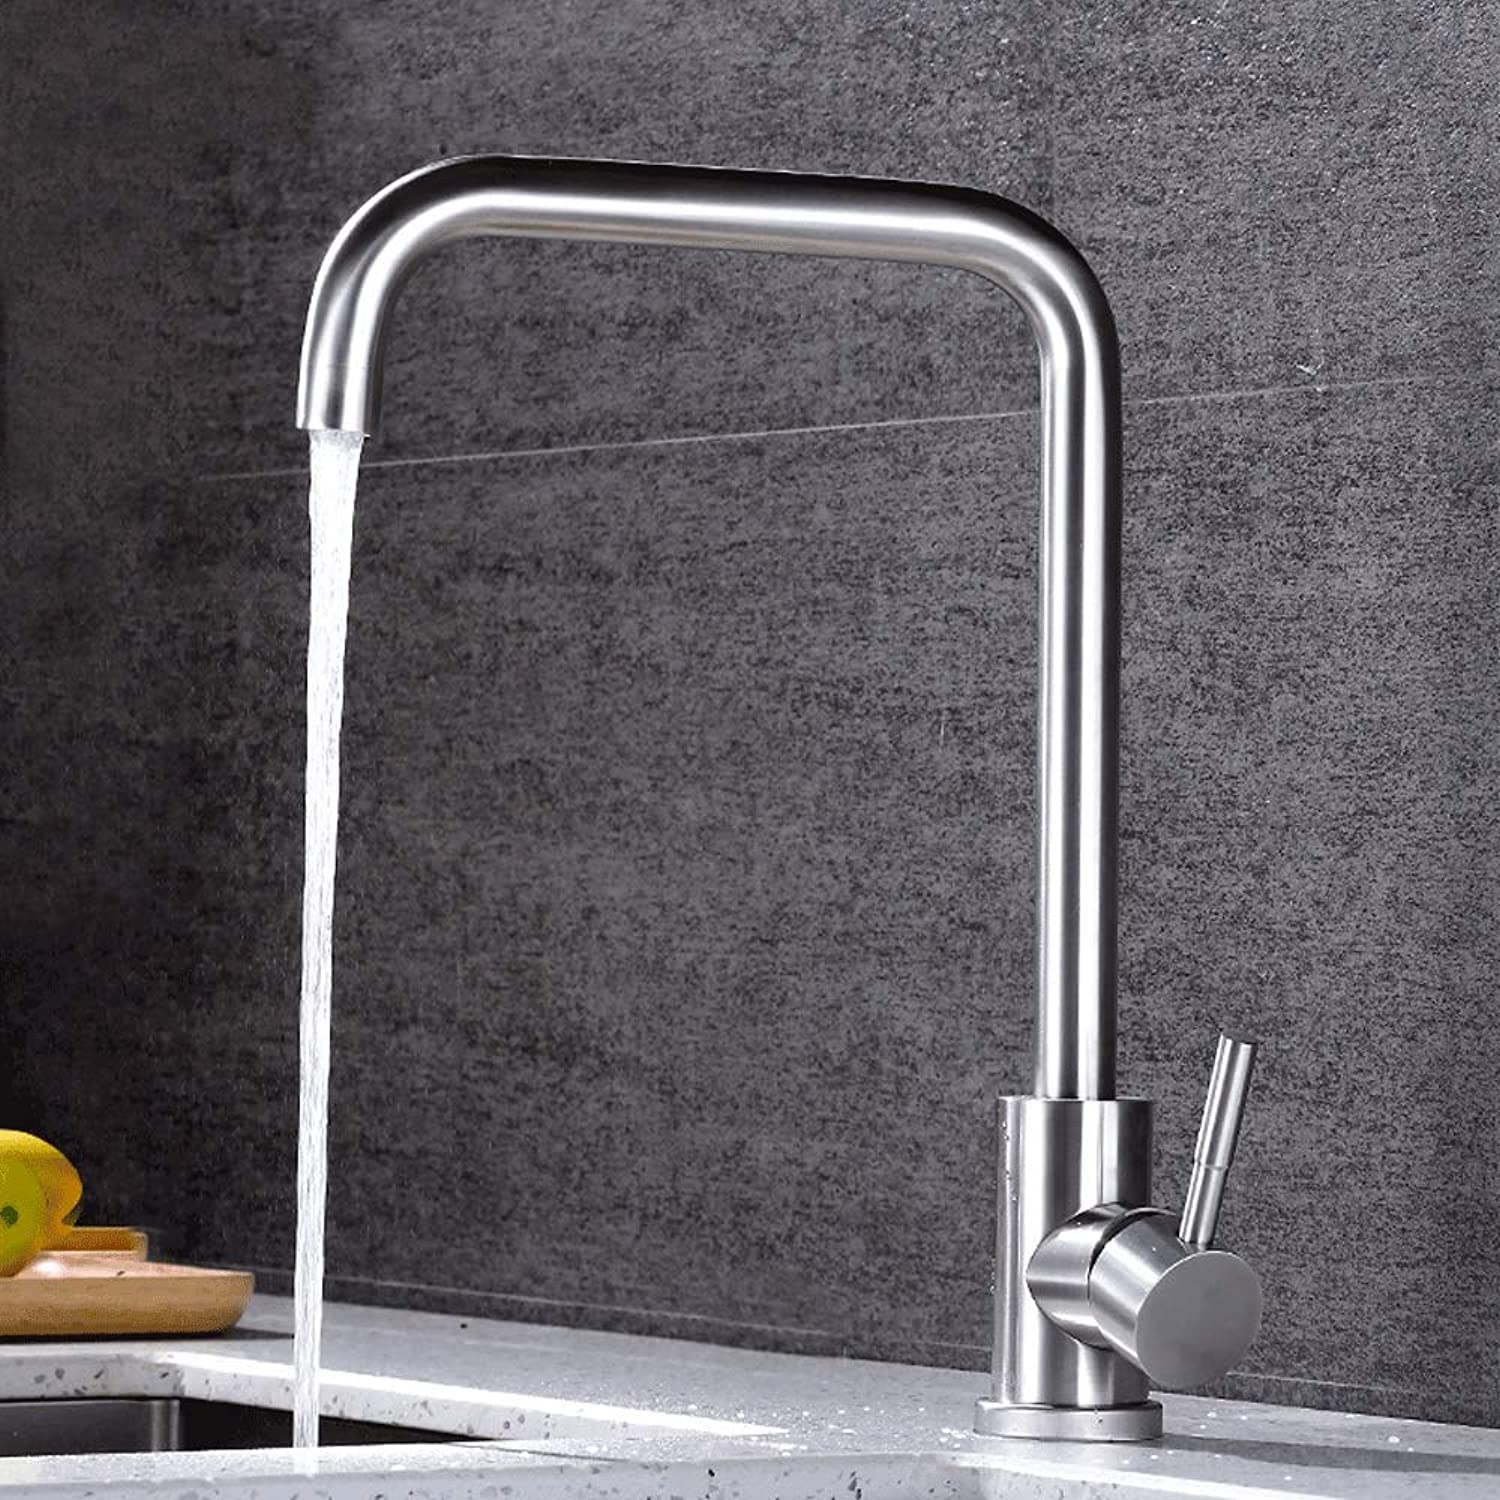 Ppigle Kitchen Faucet Hot And Cold Sink Sink 304 Stainless Steel Sink Faucet Can Be redated 304 Stainless Steel